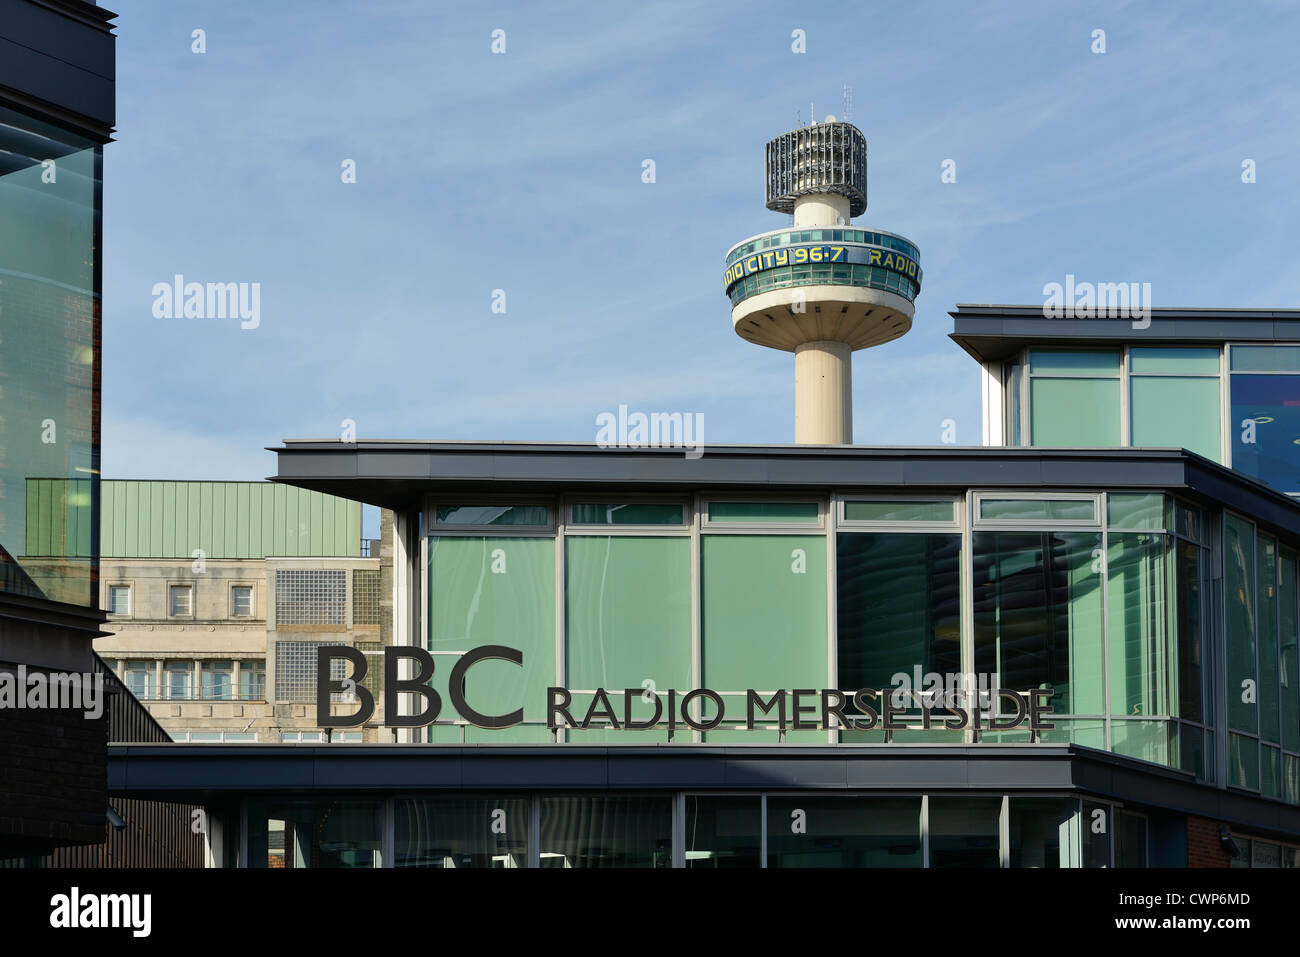 BBC Radio Merseyside and St Johns Beacon Liverpool - Stock Image